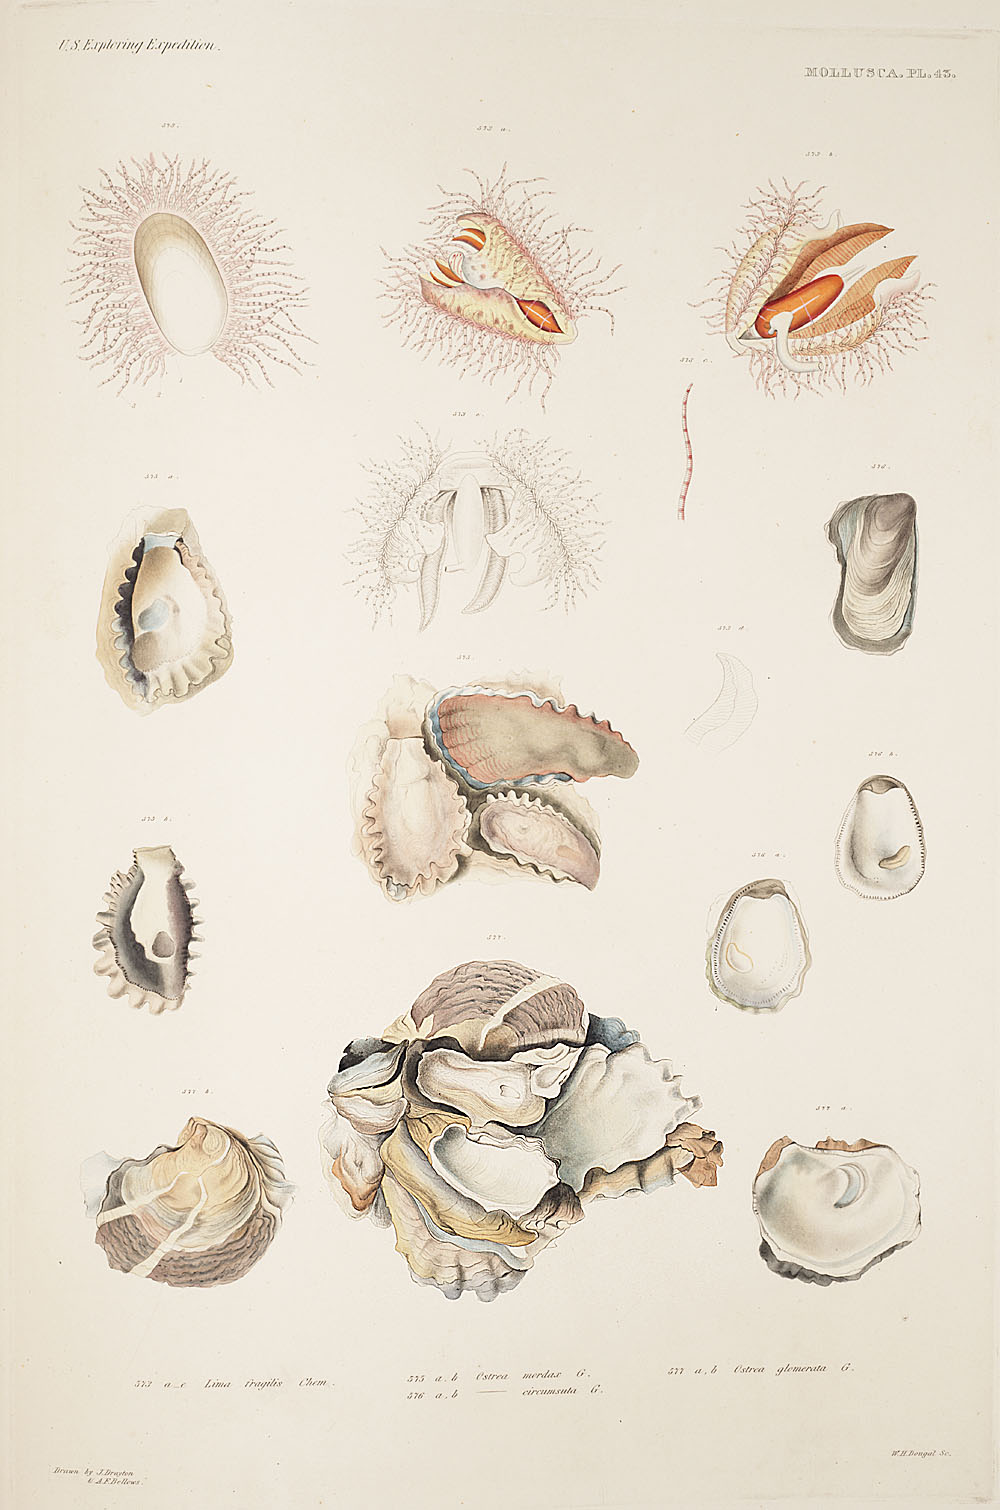 Mollusca, Pl. 43,  Image number:sil19-18-107b